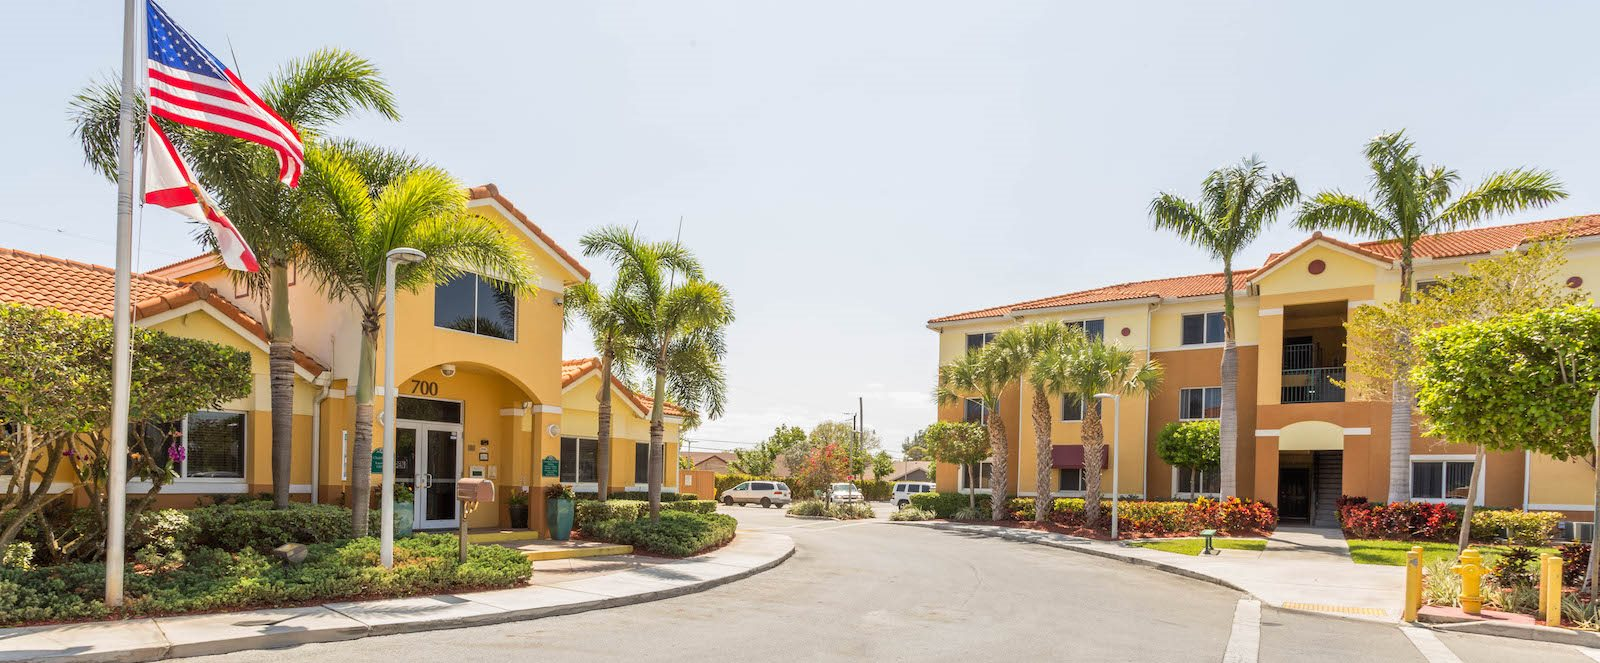 Welcome to Tallman Pines I and II apartments in deerfield beach, florida